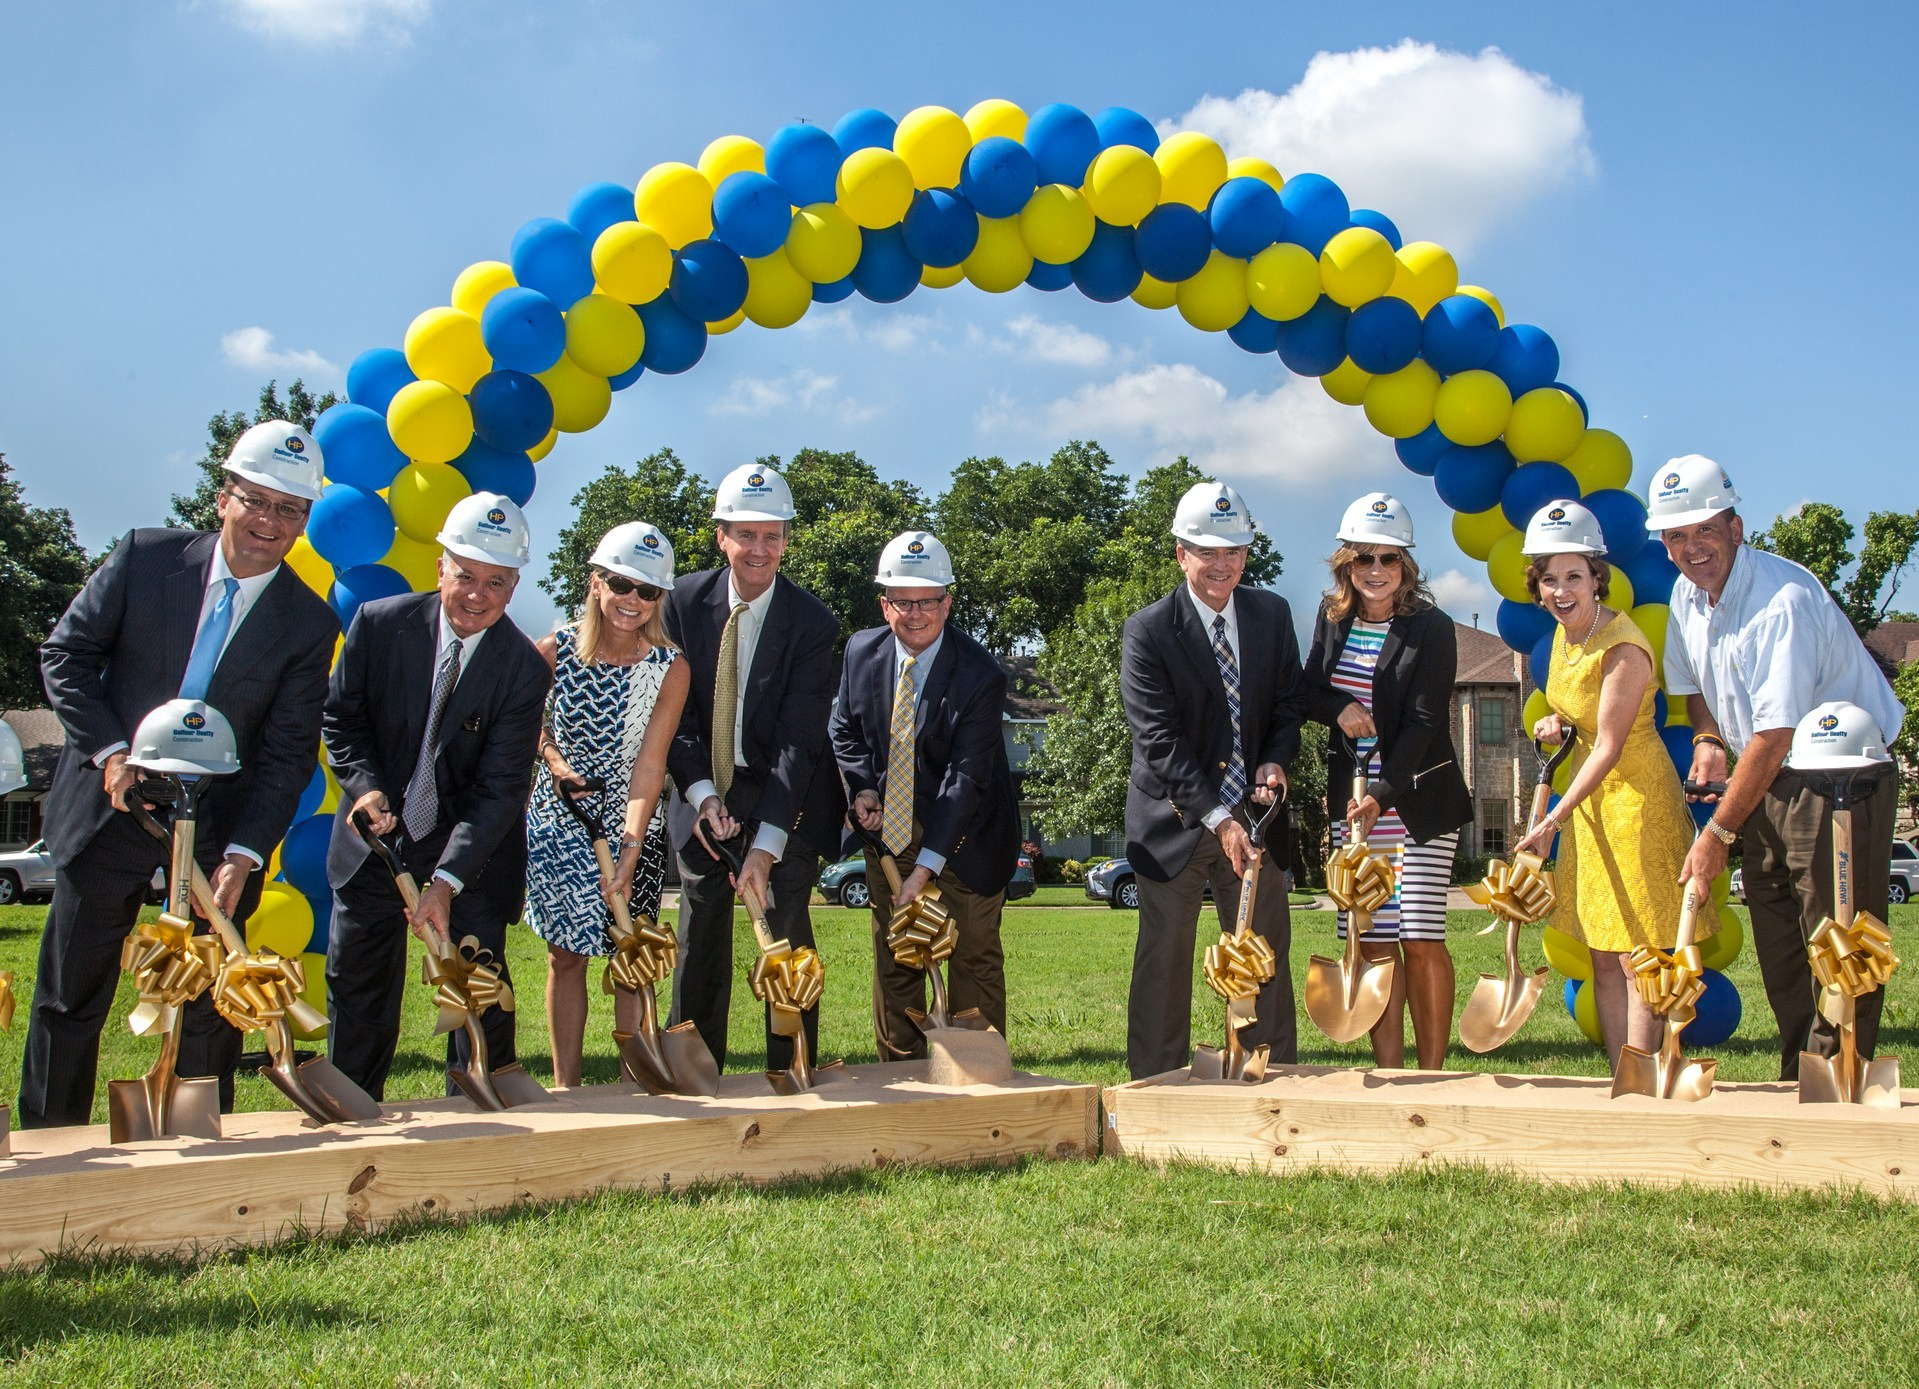 The HPISD Board of Trustees participate in the groundbreaking ceremony for the first new elementary school